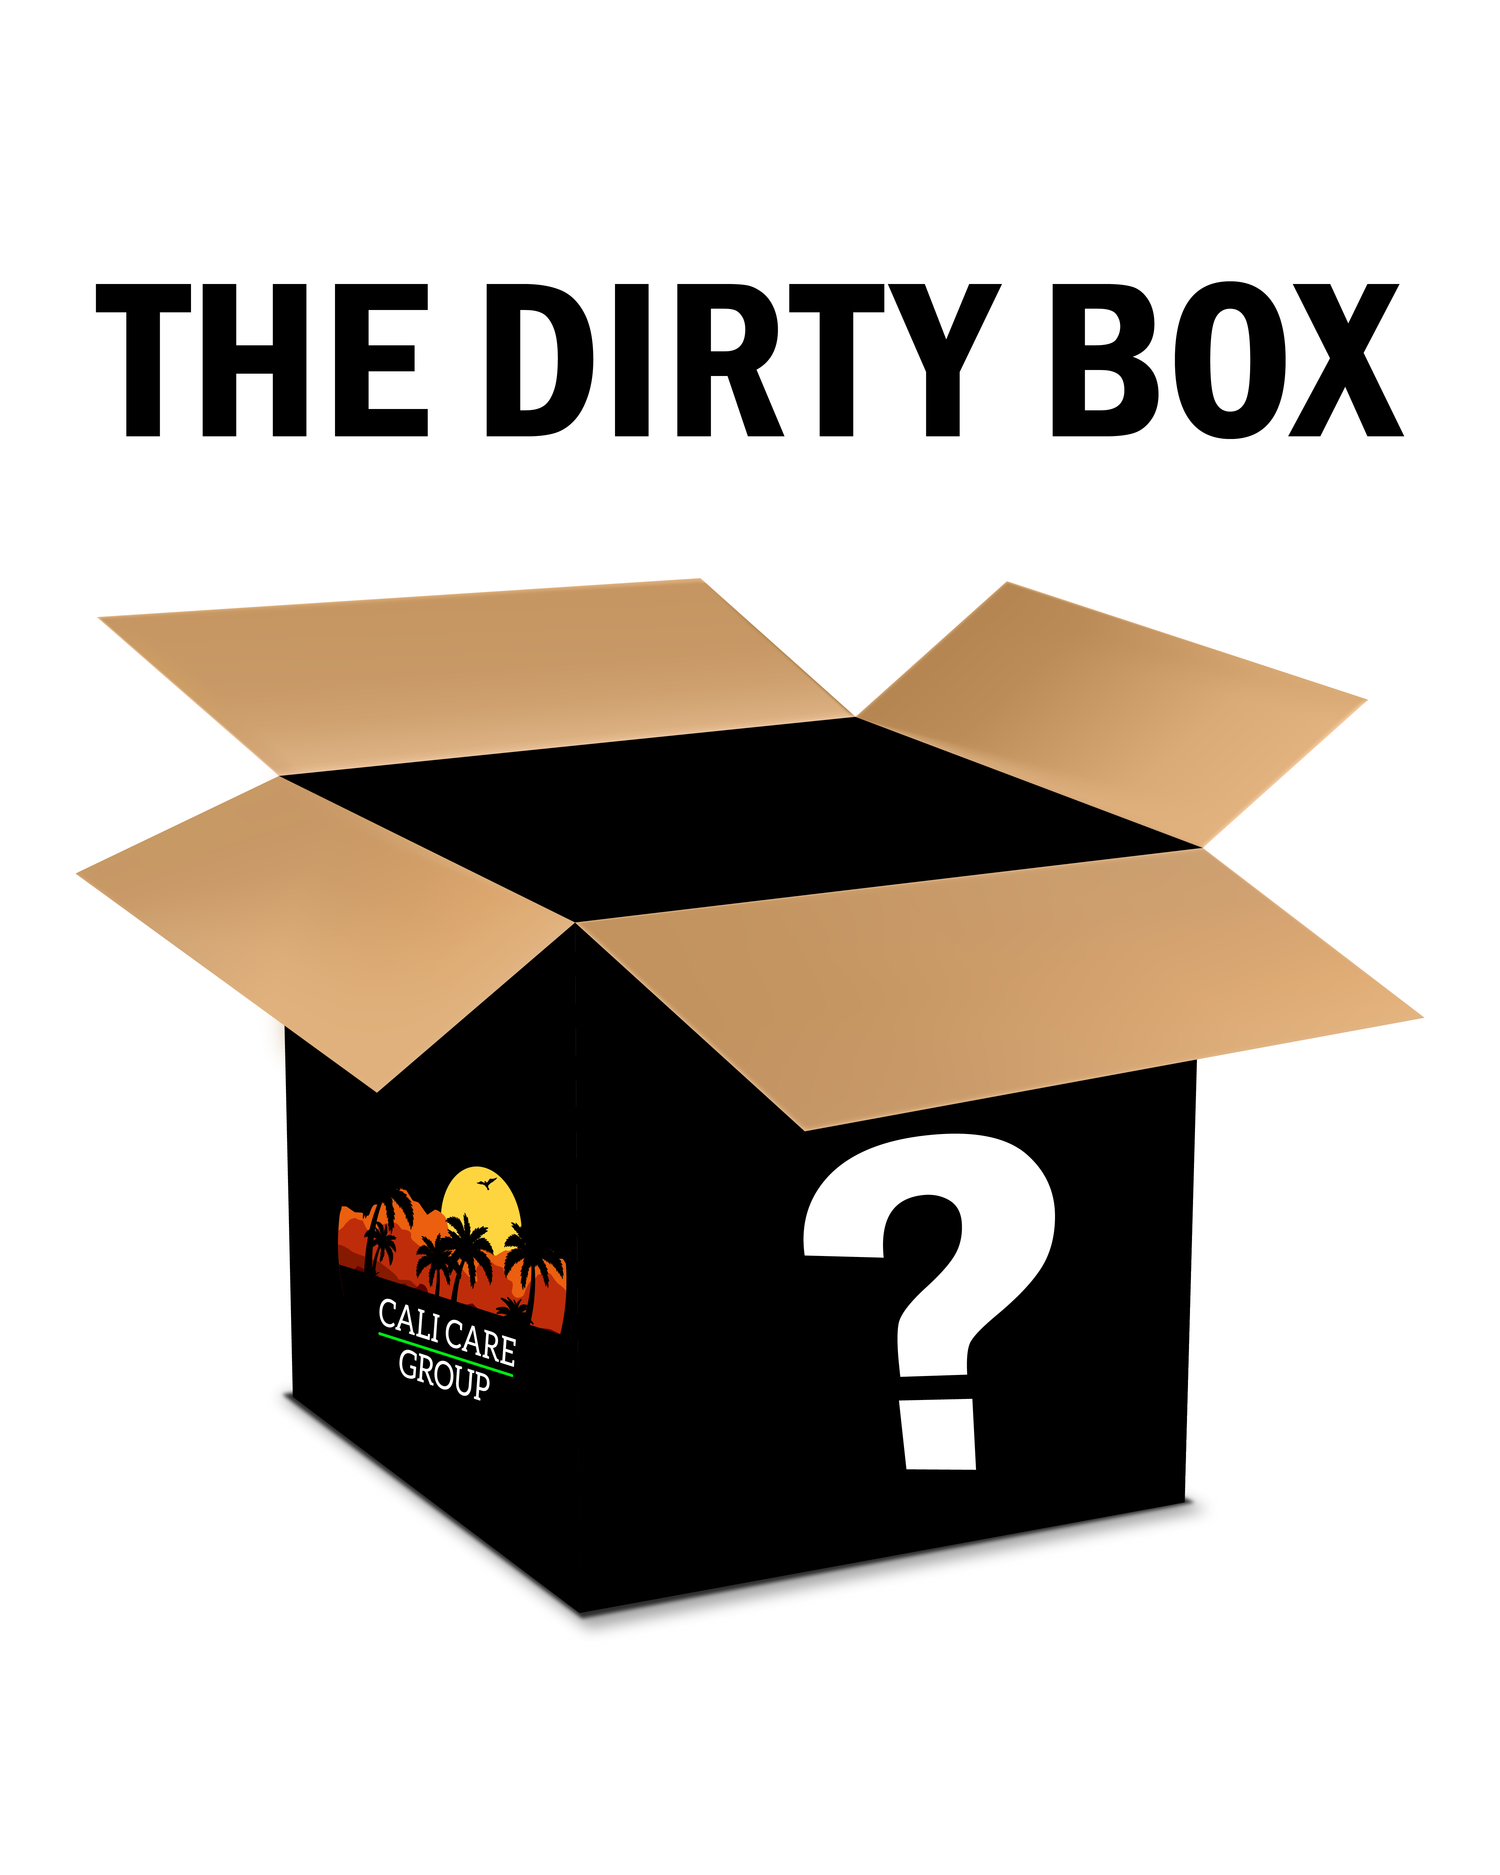 THE DIRTY BOX